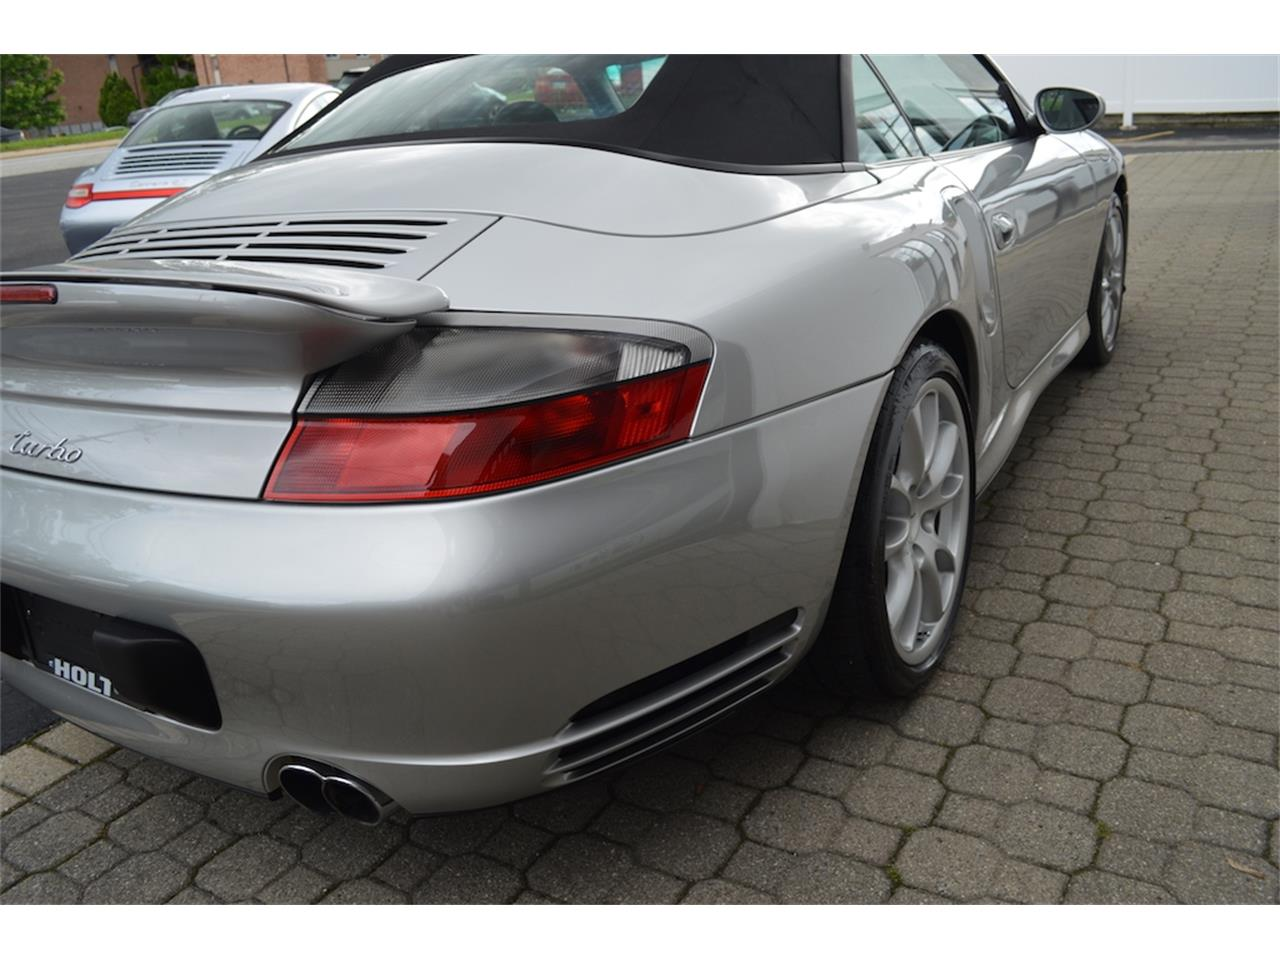 Large Picture of 2004 996 Turbo Cabriolet located in Pennsylvania - $46,500.00 - NQV0